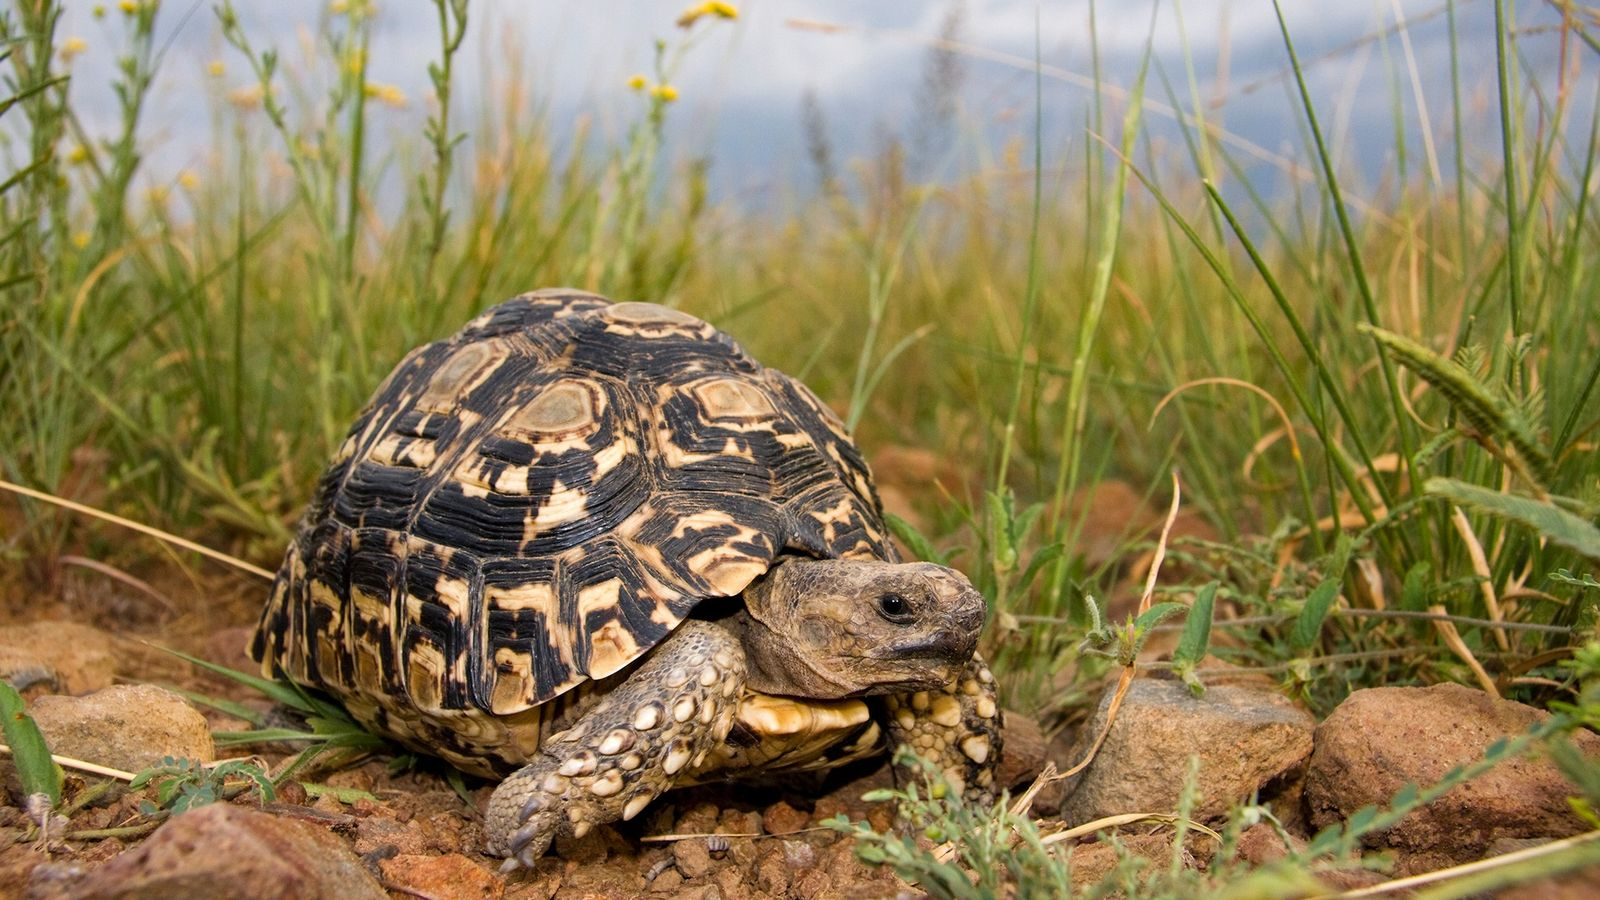 Leopard tortoises were some of the nearly 10,000 live turtles and tortoises seized in Operation Thunderball.